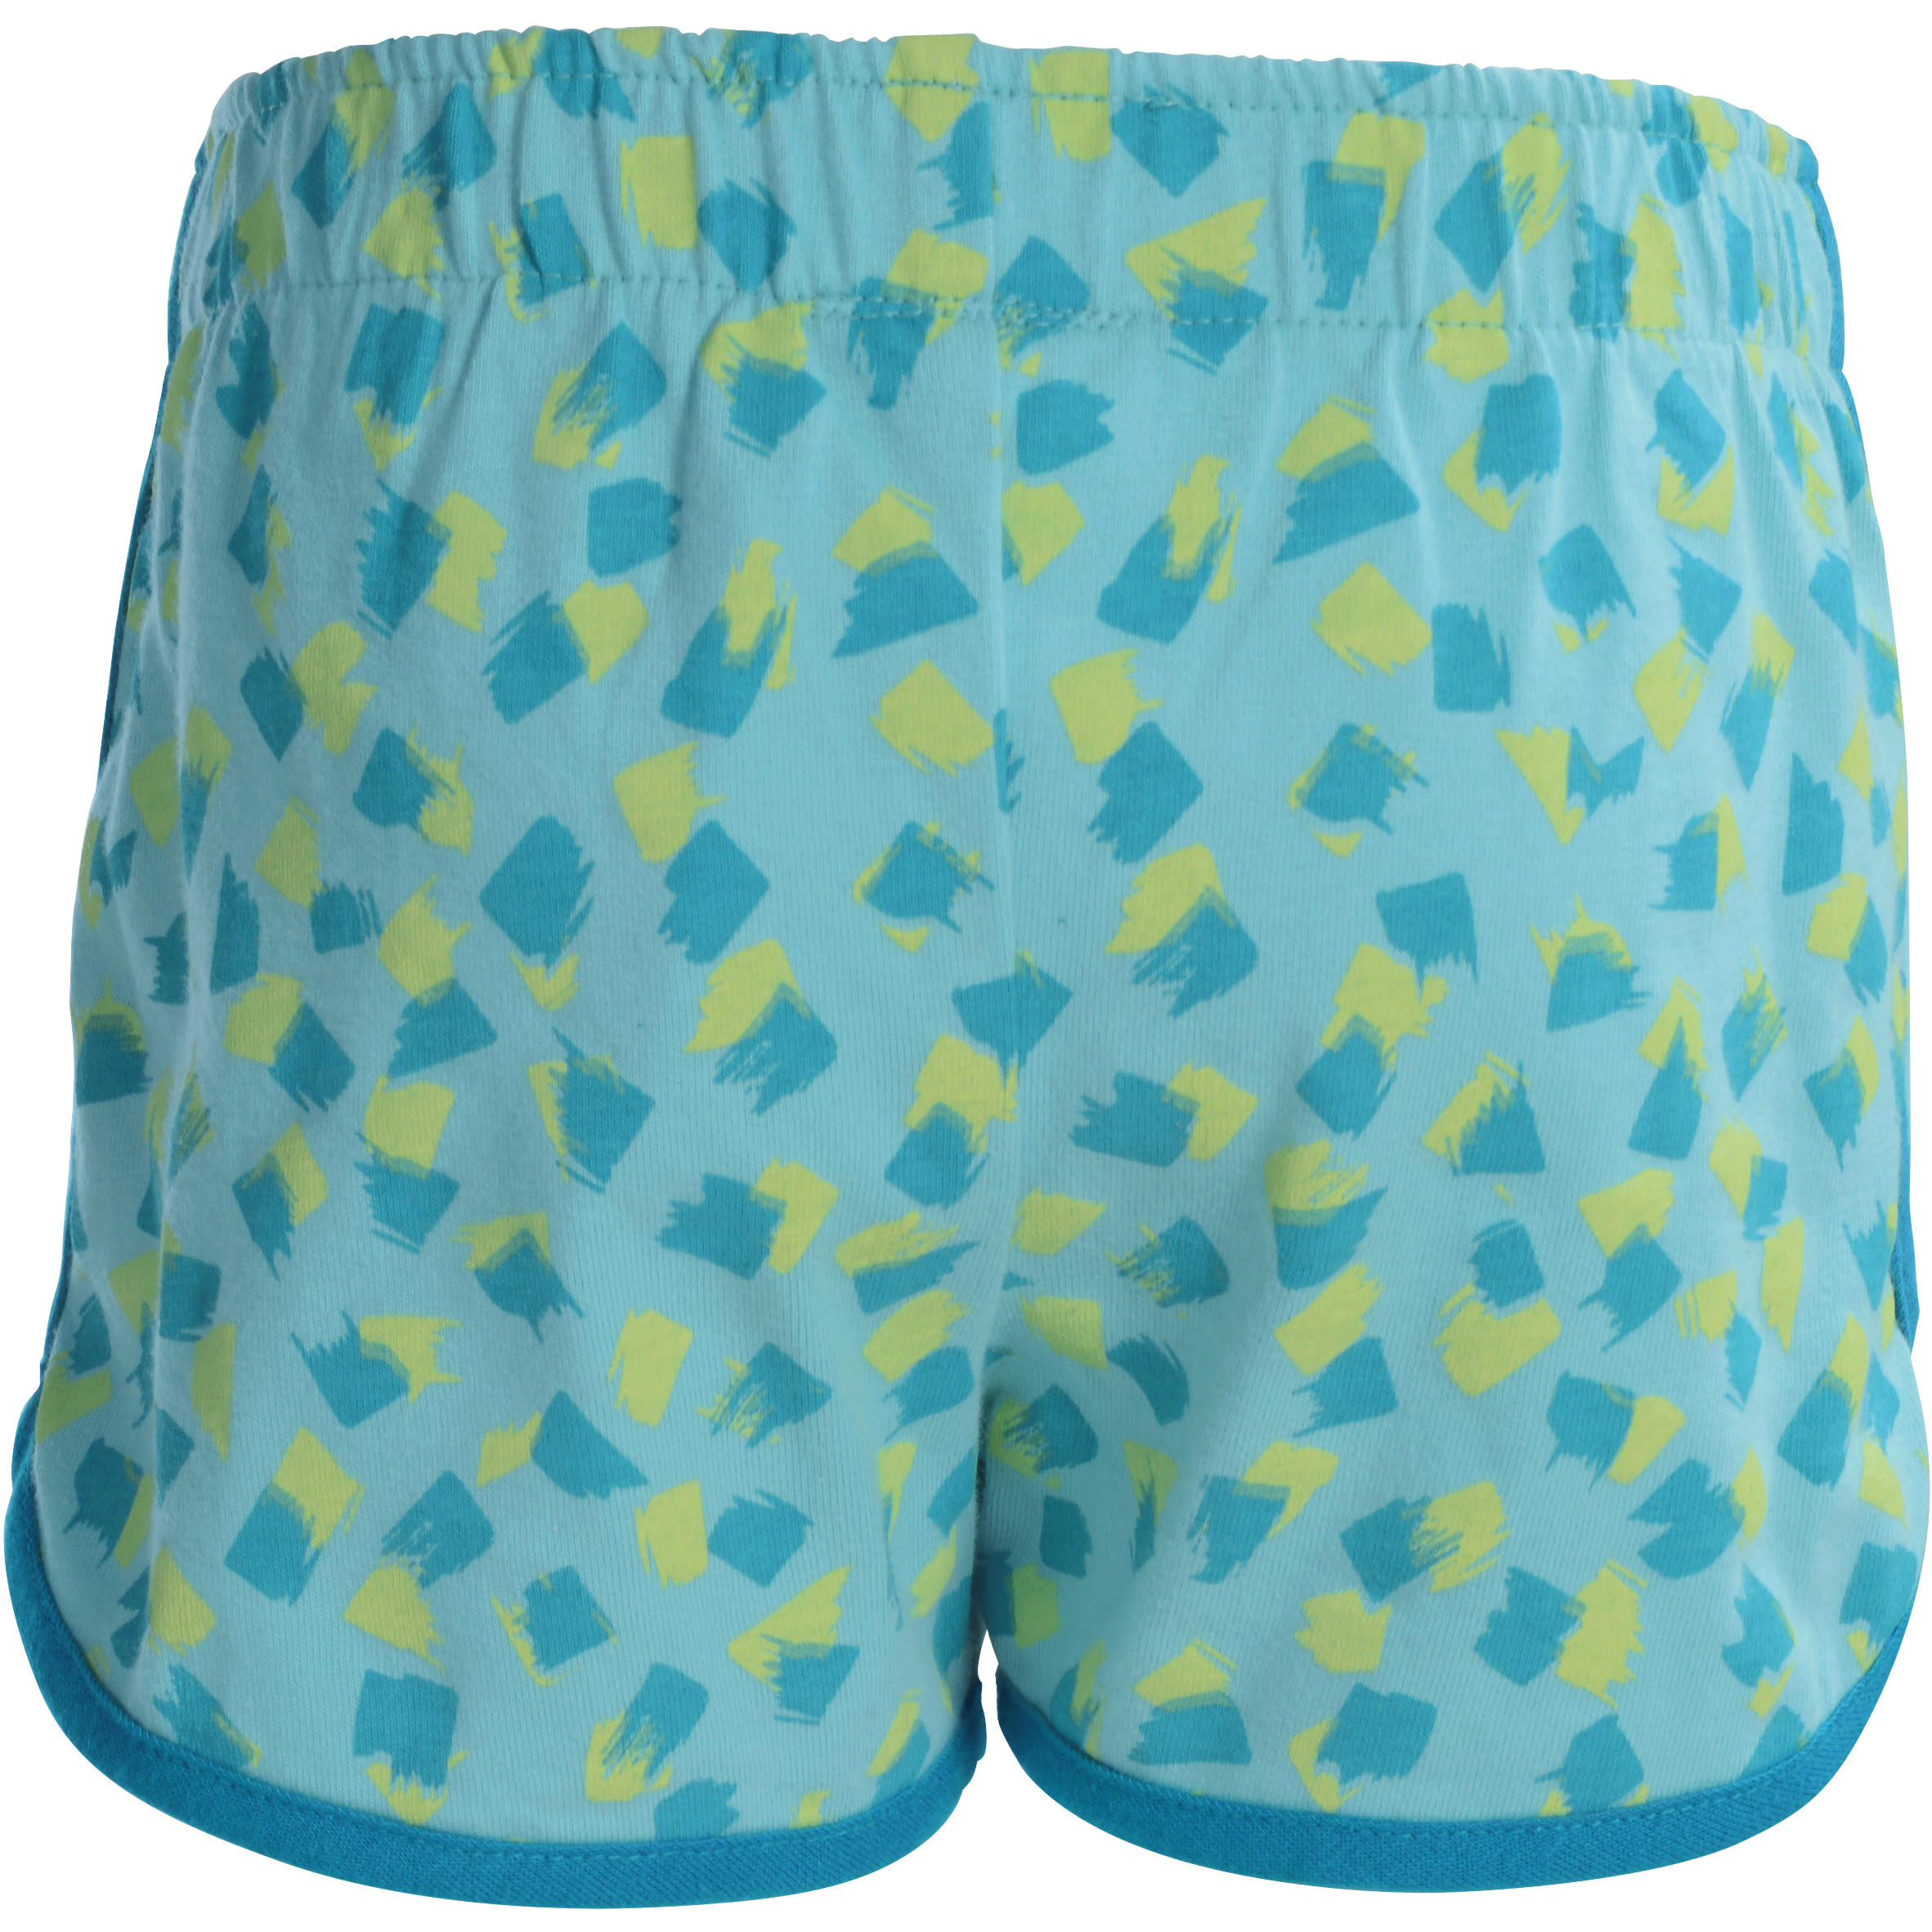 Baby Printed Gym Shorts - Navy Blue